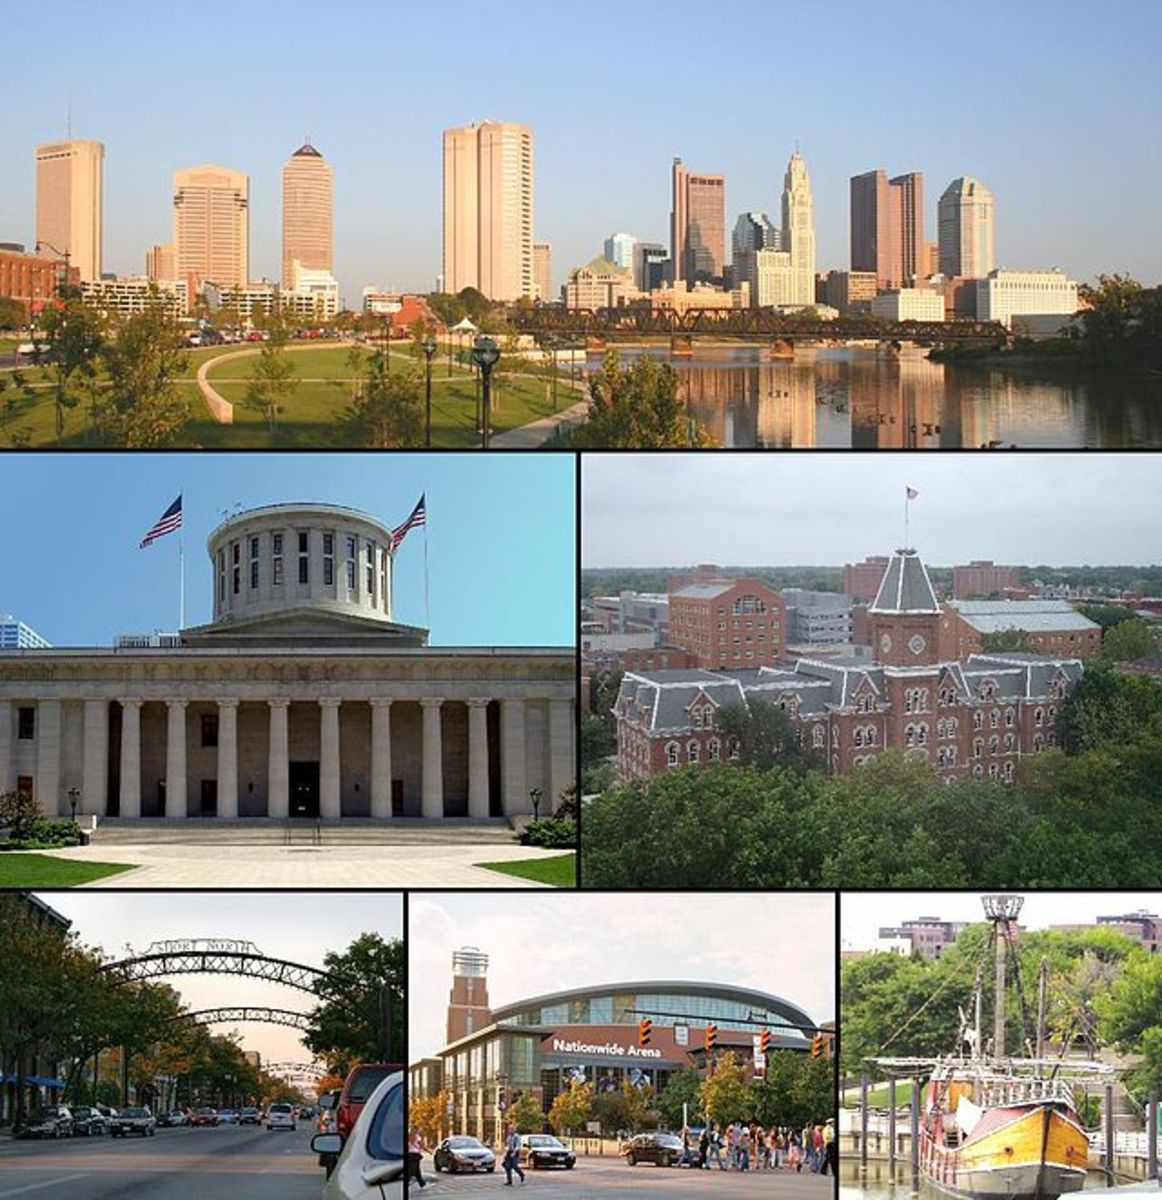 Columbus: Downtown Columbus, Ohio Statehouse Capitol Square, University Hall, Short North, Nationwide Arena, and Santa Maria replica